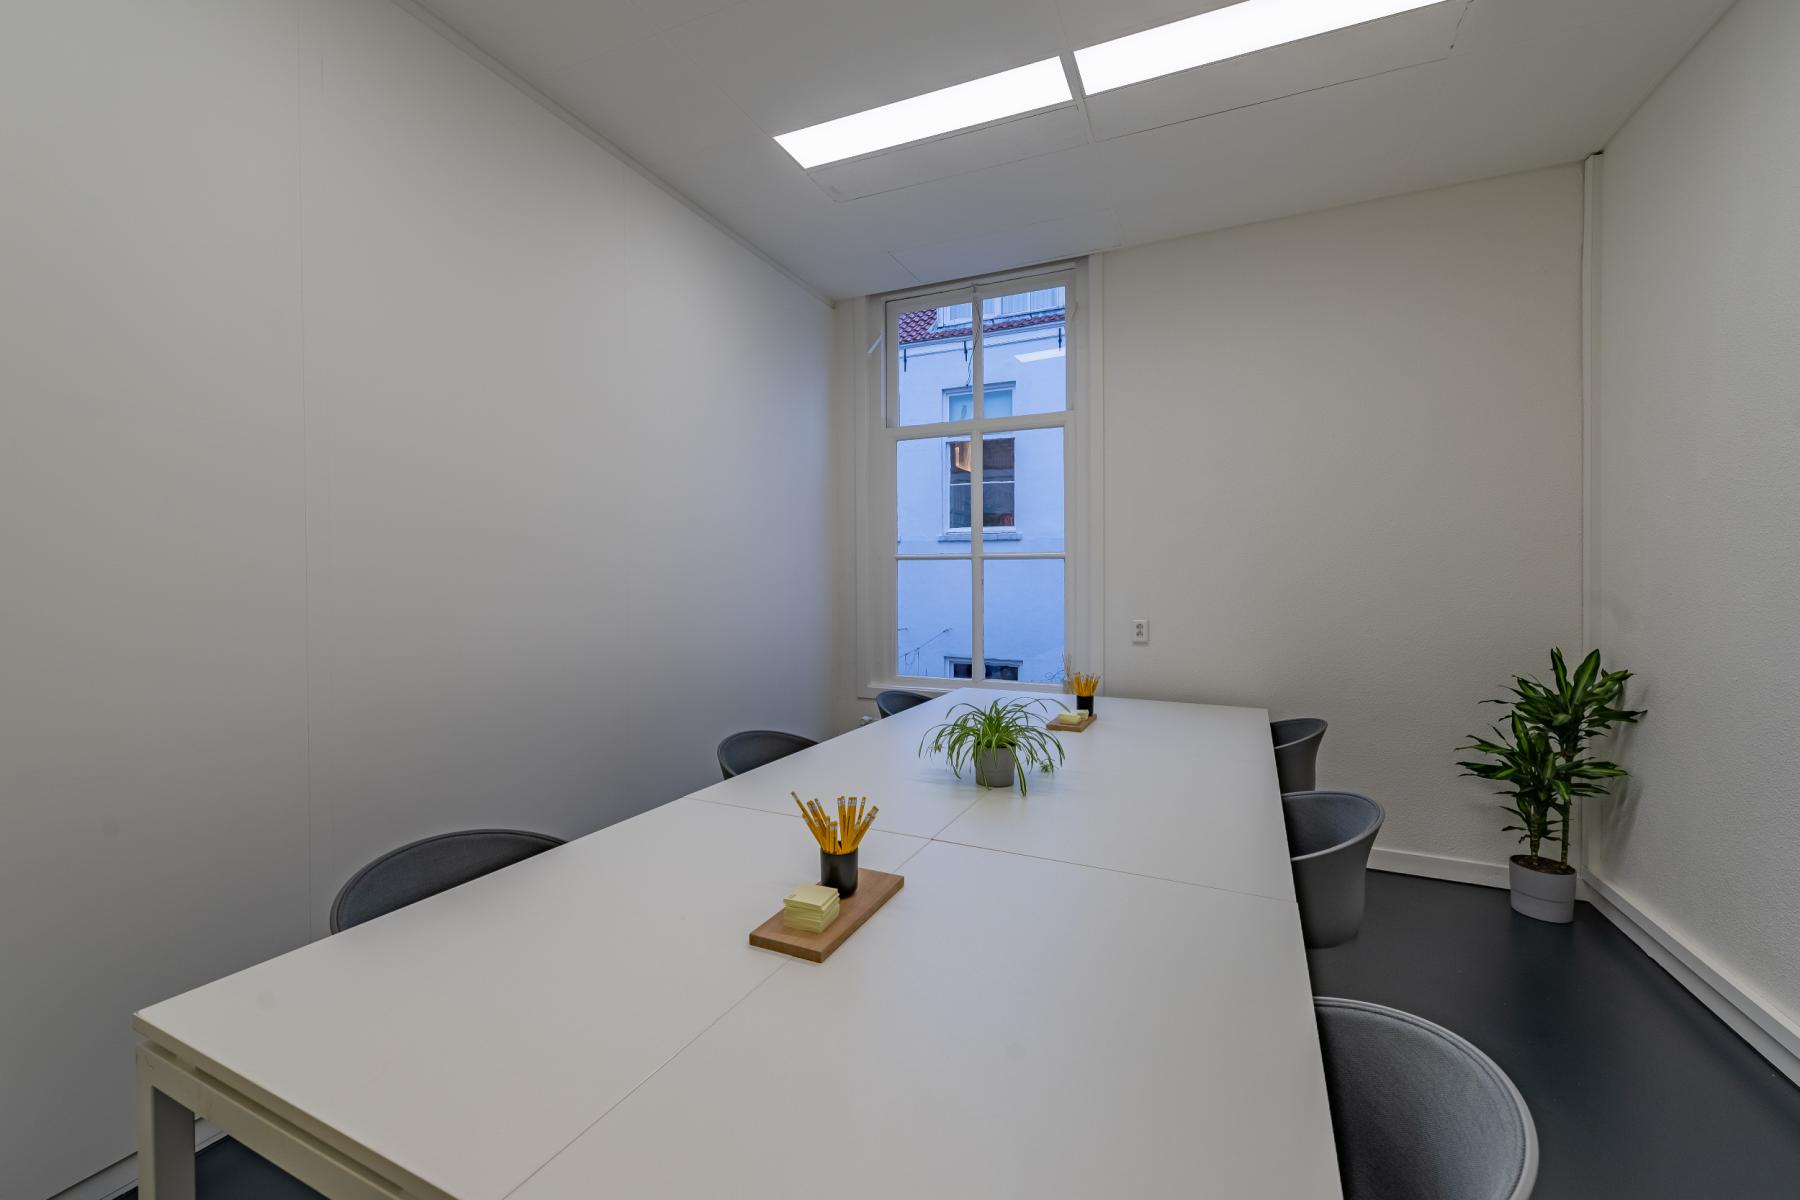 Rent office space Staalstraat 7a, Amsterdam (2)